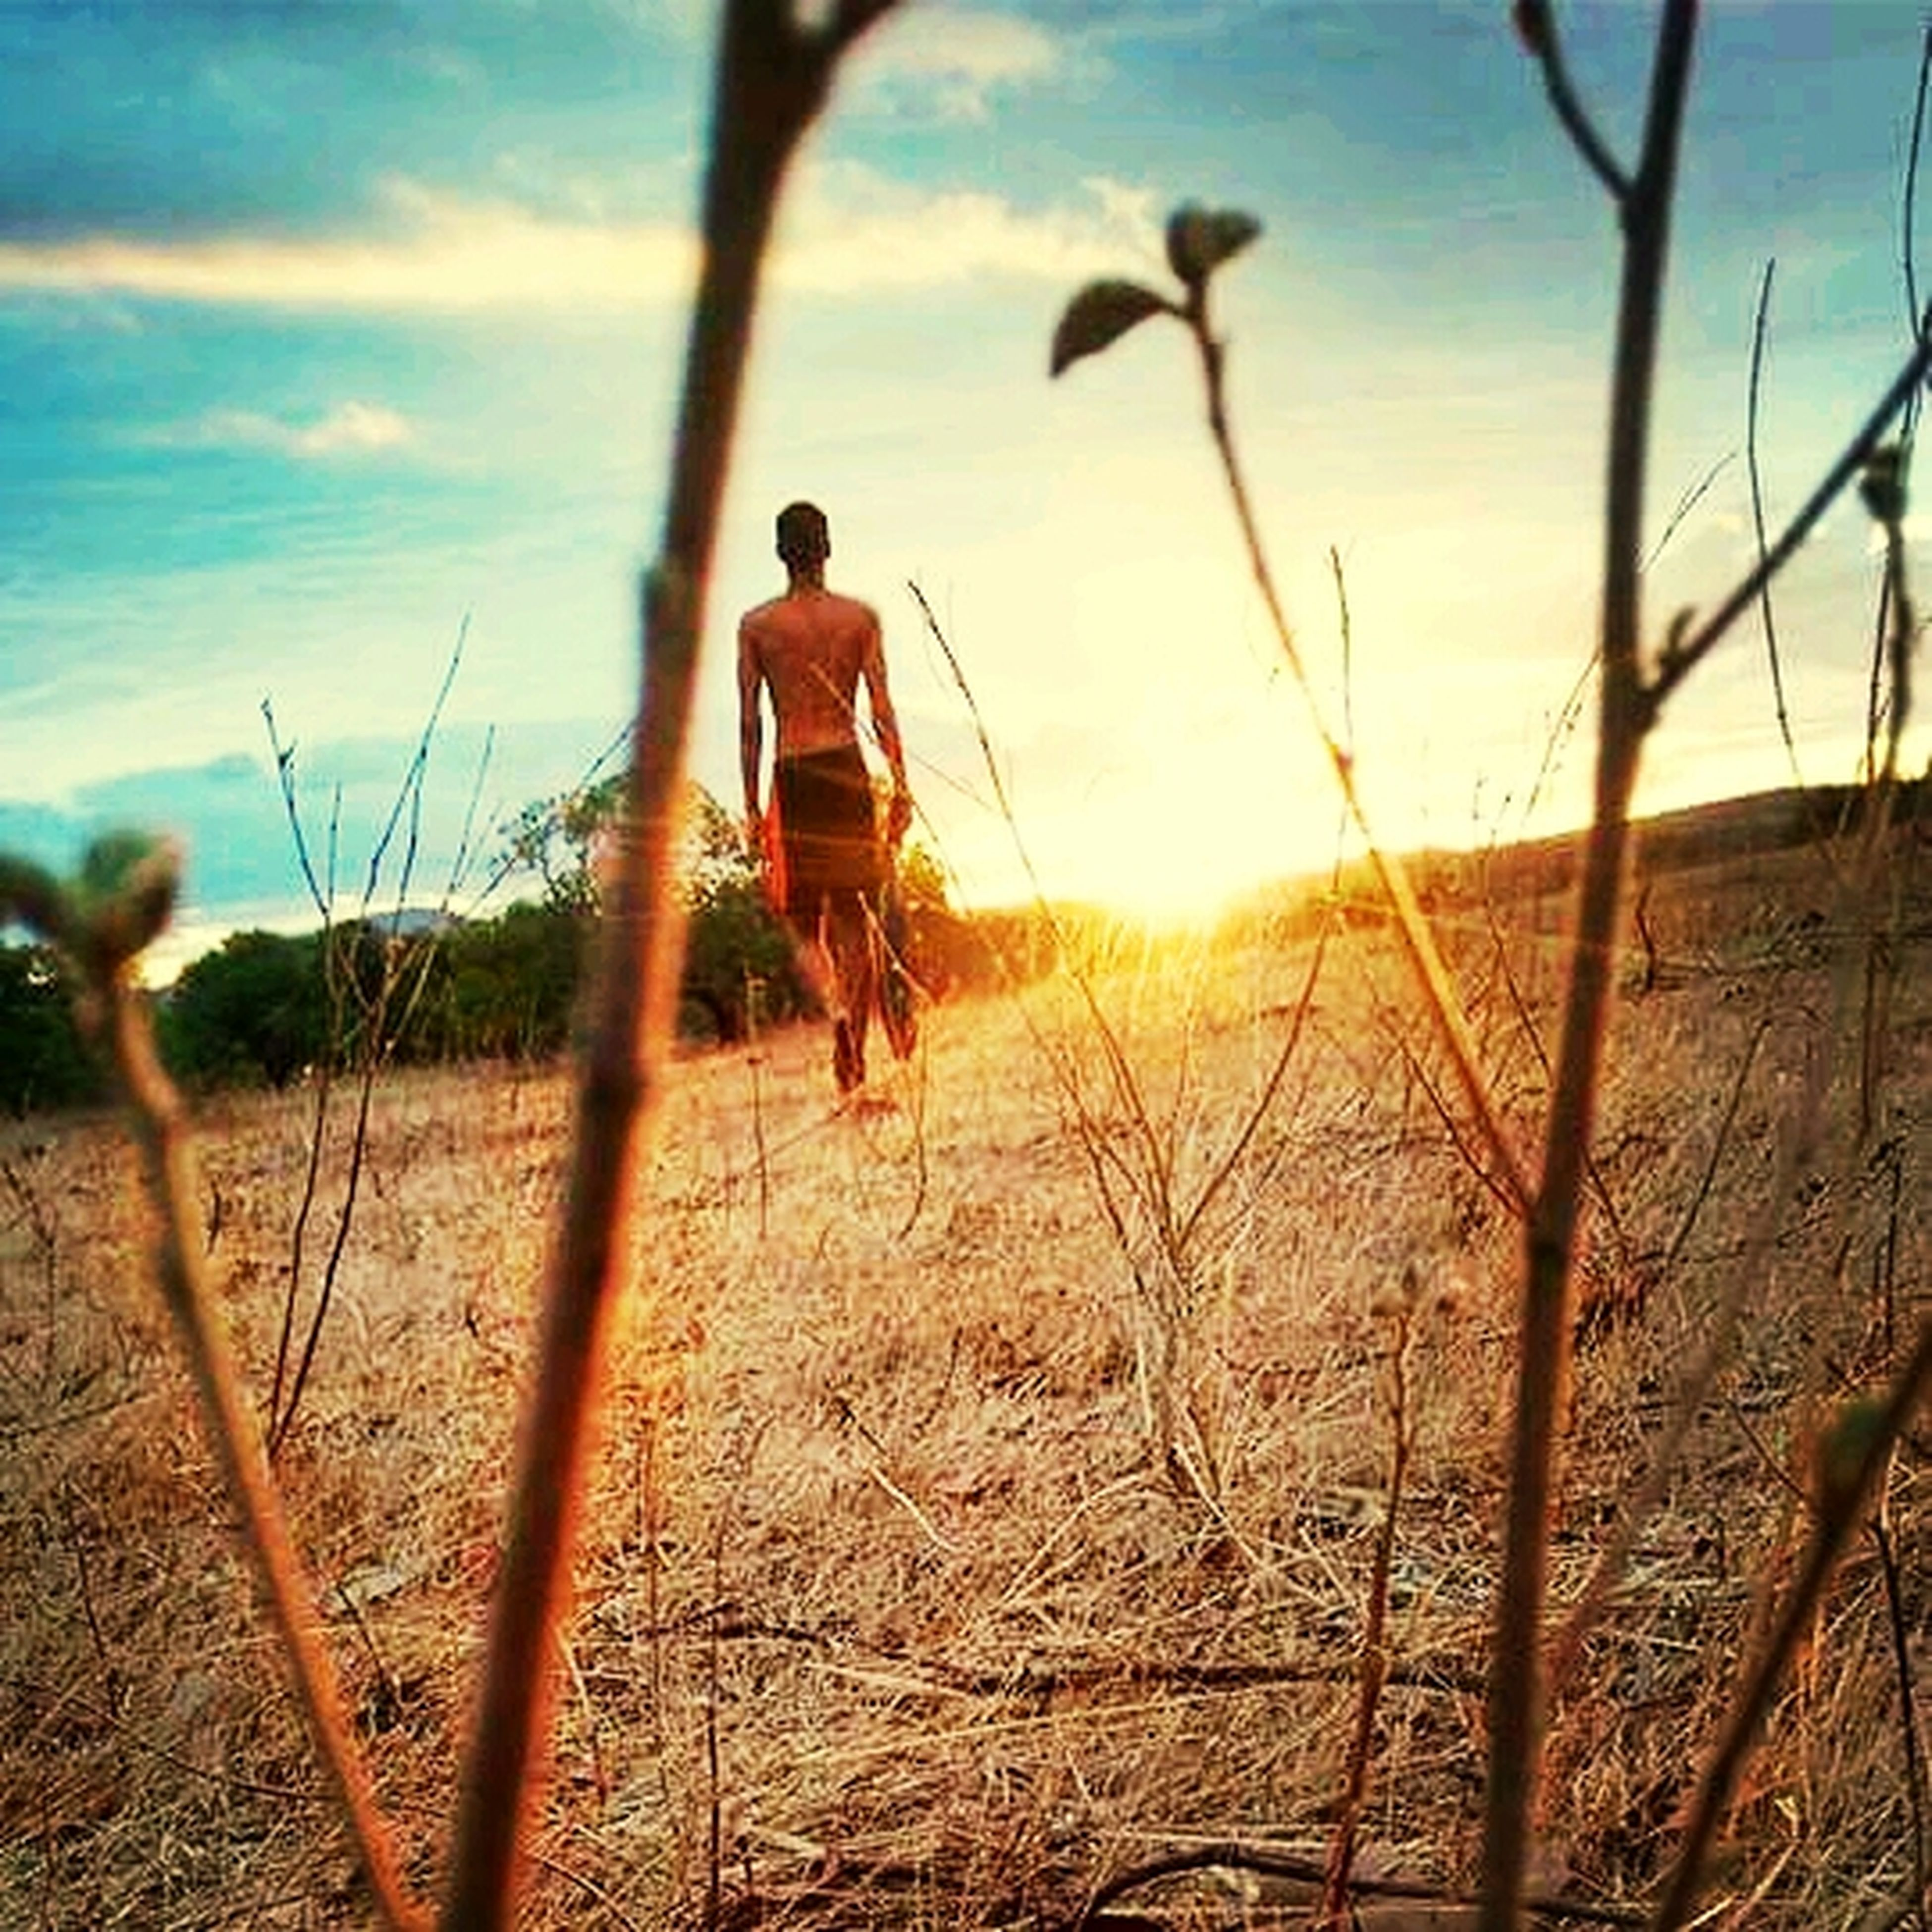 full length, leisure activity, lifestyles, sky, childhood, casual clothing, standing, boys, field, landscape, elementary age, sunlight, nature, rear view, sand, fence, walking, grass